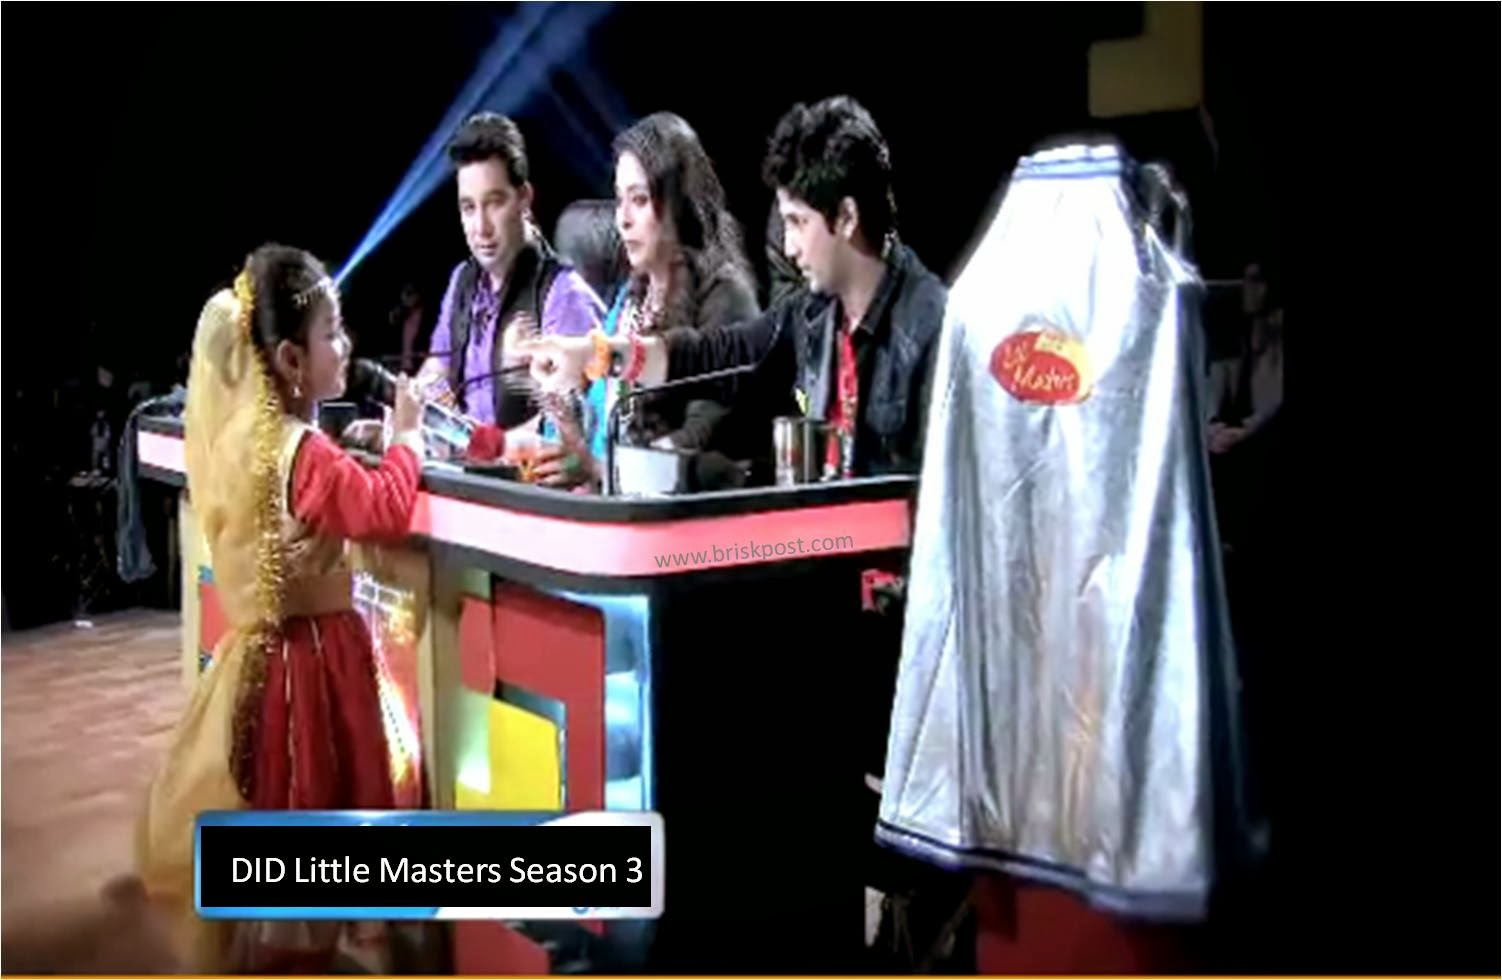 Master Ahmad, Geeta Ma and Master Mudassar interacting with a little girl on DID Little Masters; on right-hand-side, the Super Wing is shining to inspire the contestants